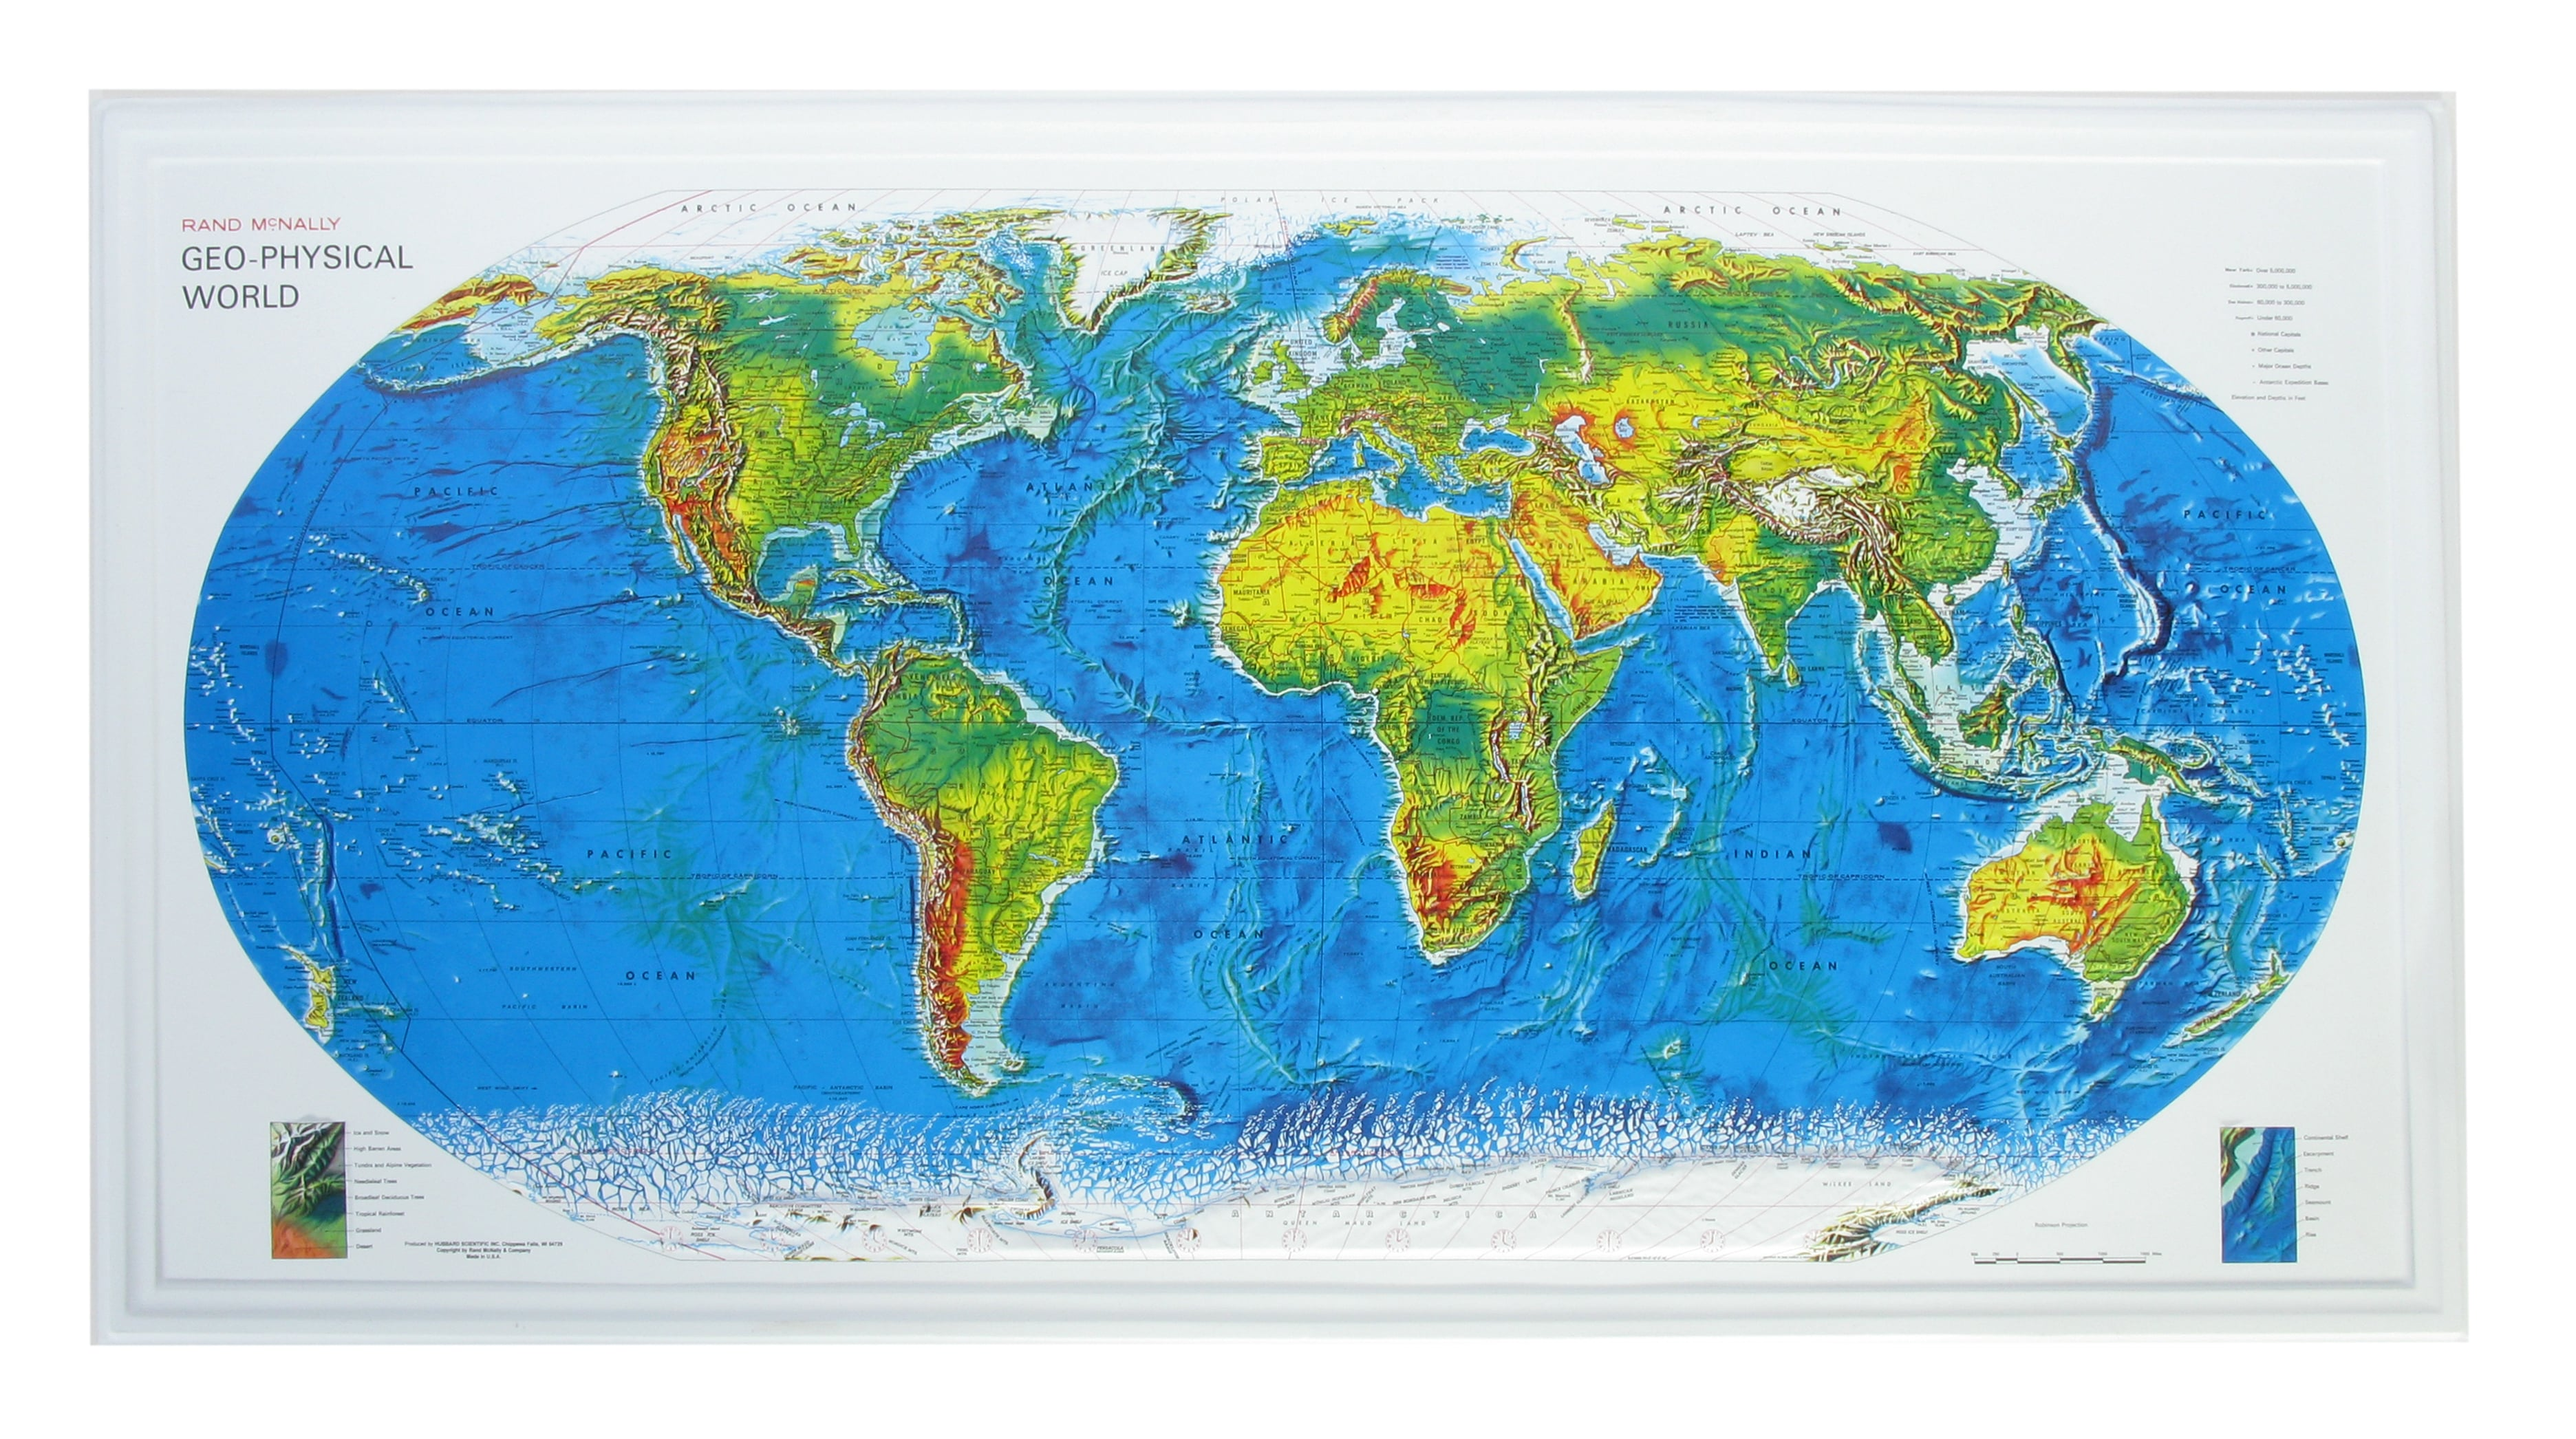 3d world maps galerie tatouage 3d world maps tatouage ethan 3d relief world map rand mc nally 3d world gumiabroncs Gallery